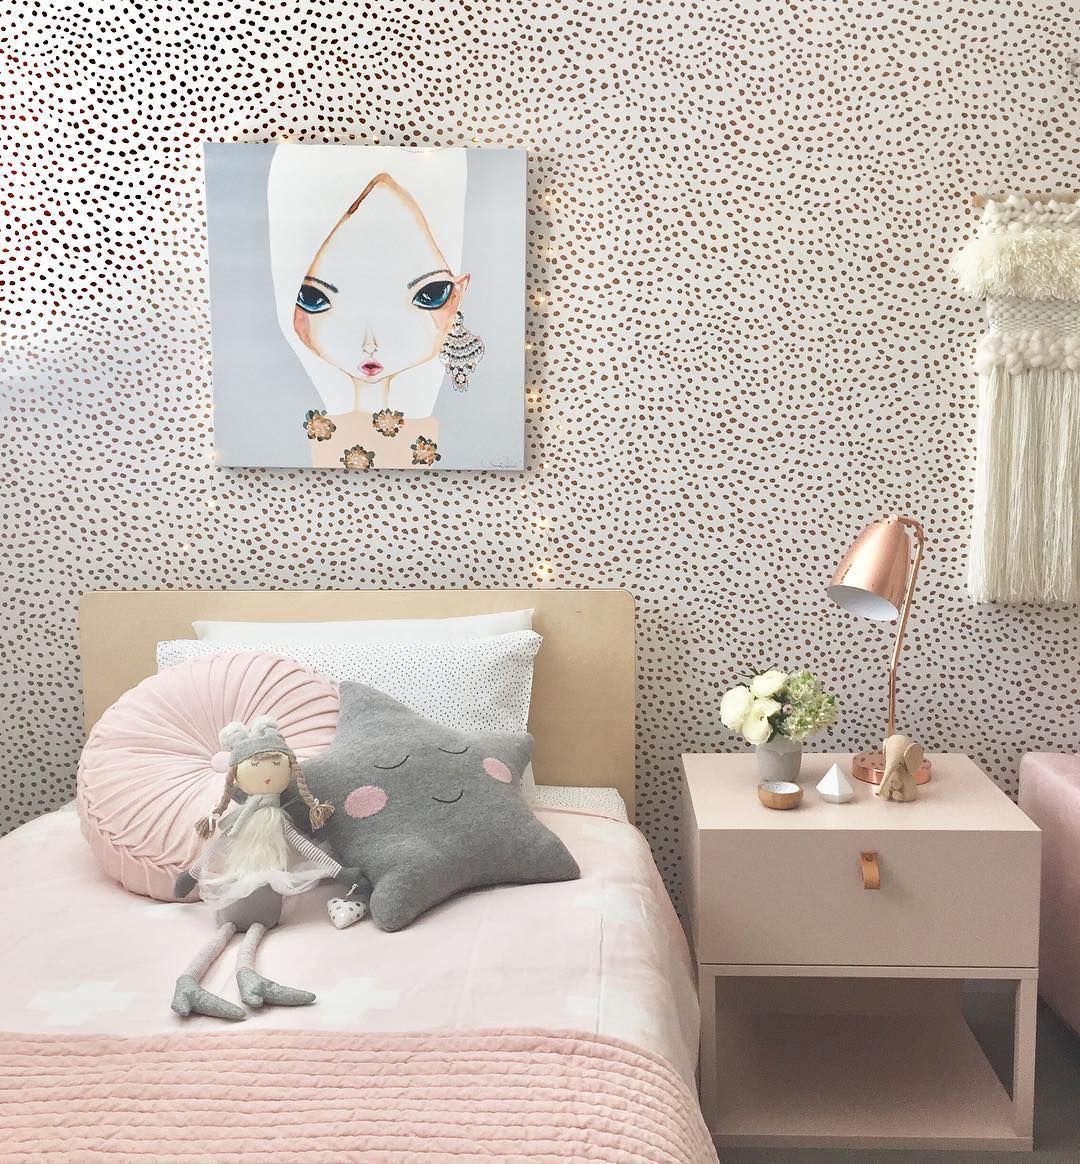 Pin On Girl Room And More